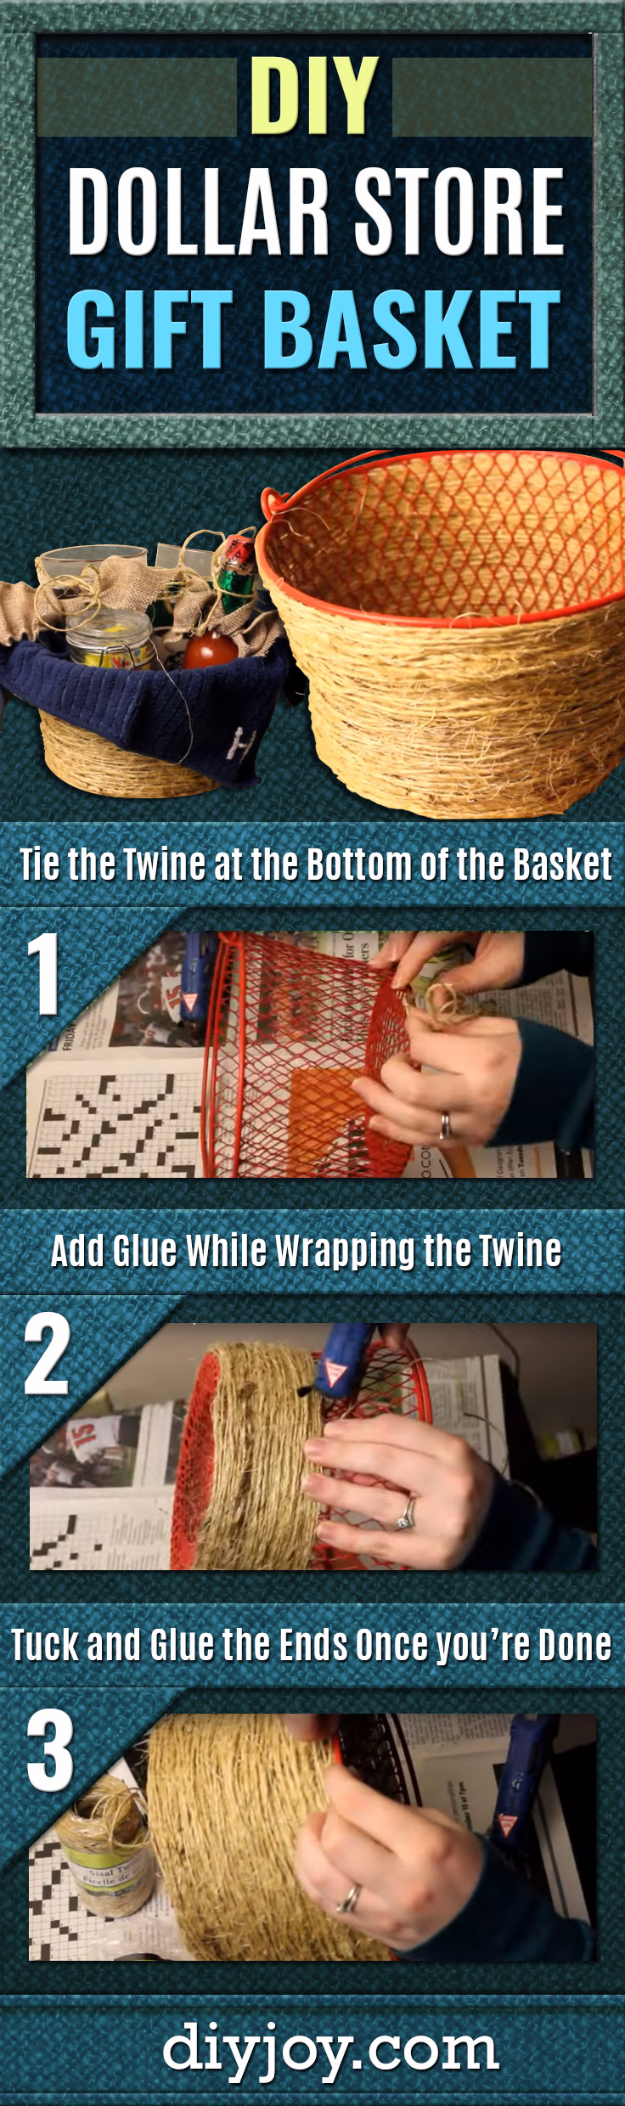 Creative Crafts Made With Baskets - Pottery Barn Inspired Dollar Store Gift Basket - DIY Storage and Organizing Ideas, Gift Basket Ideas, Best DIY Christmas Presents and Holiday Gifts, Room and Home Decor with Step by Step Tutorials - Easy DIY Ideas and Dollar Store Crafts #crafts #diy